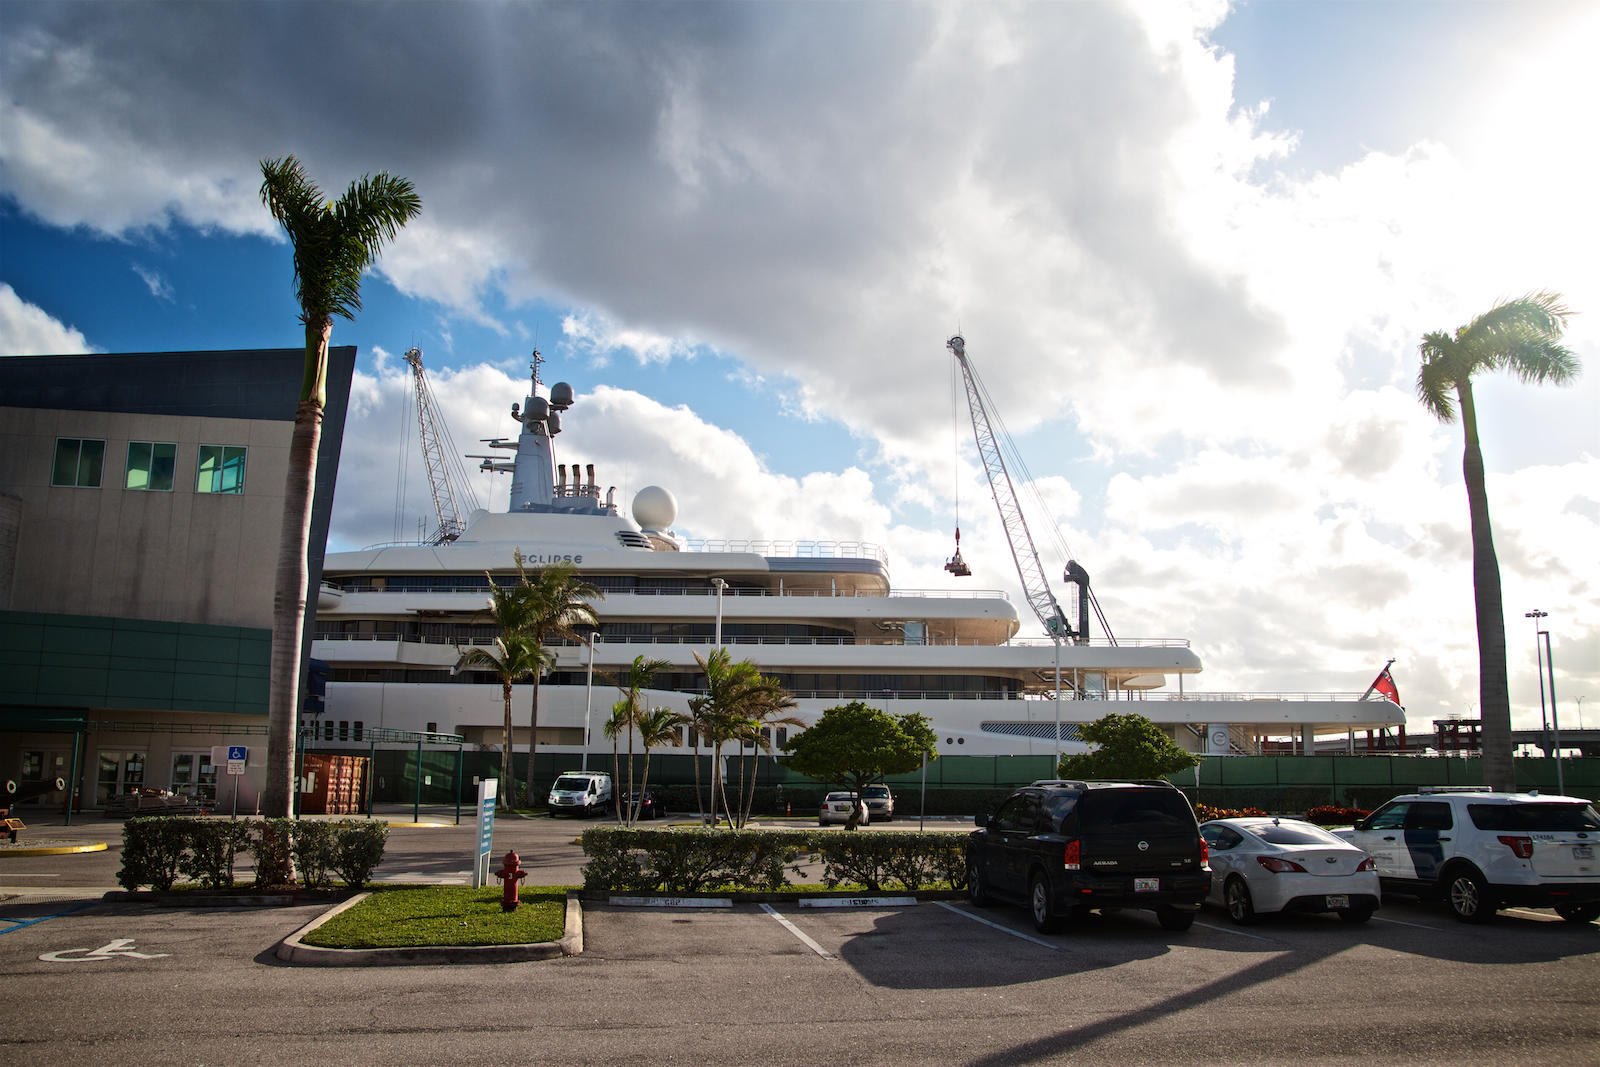 Russian Businessman Roman Abramovich S Yacht Eclipse Will Be In The Port Of Palm Beach For Next Two Weeks